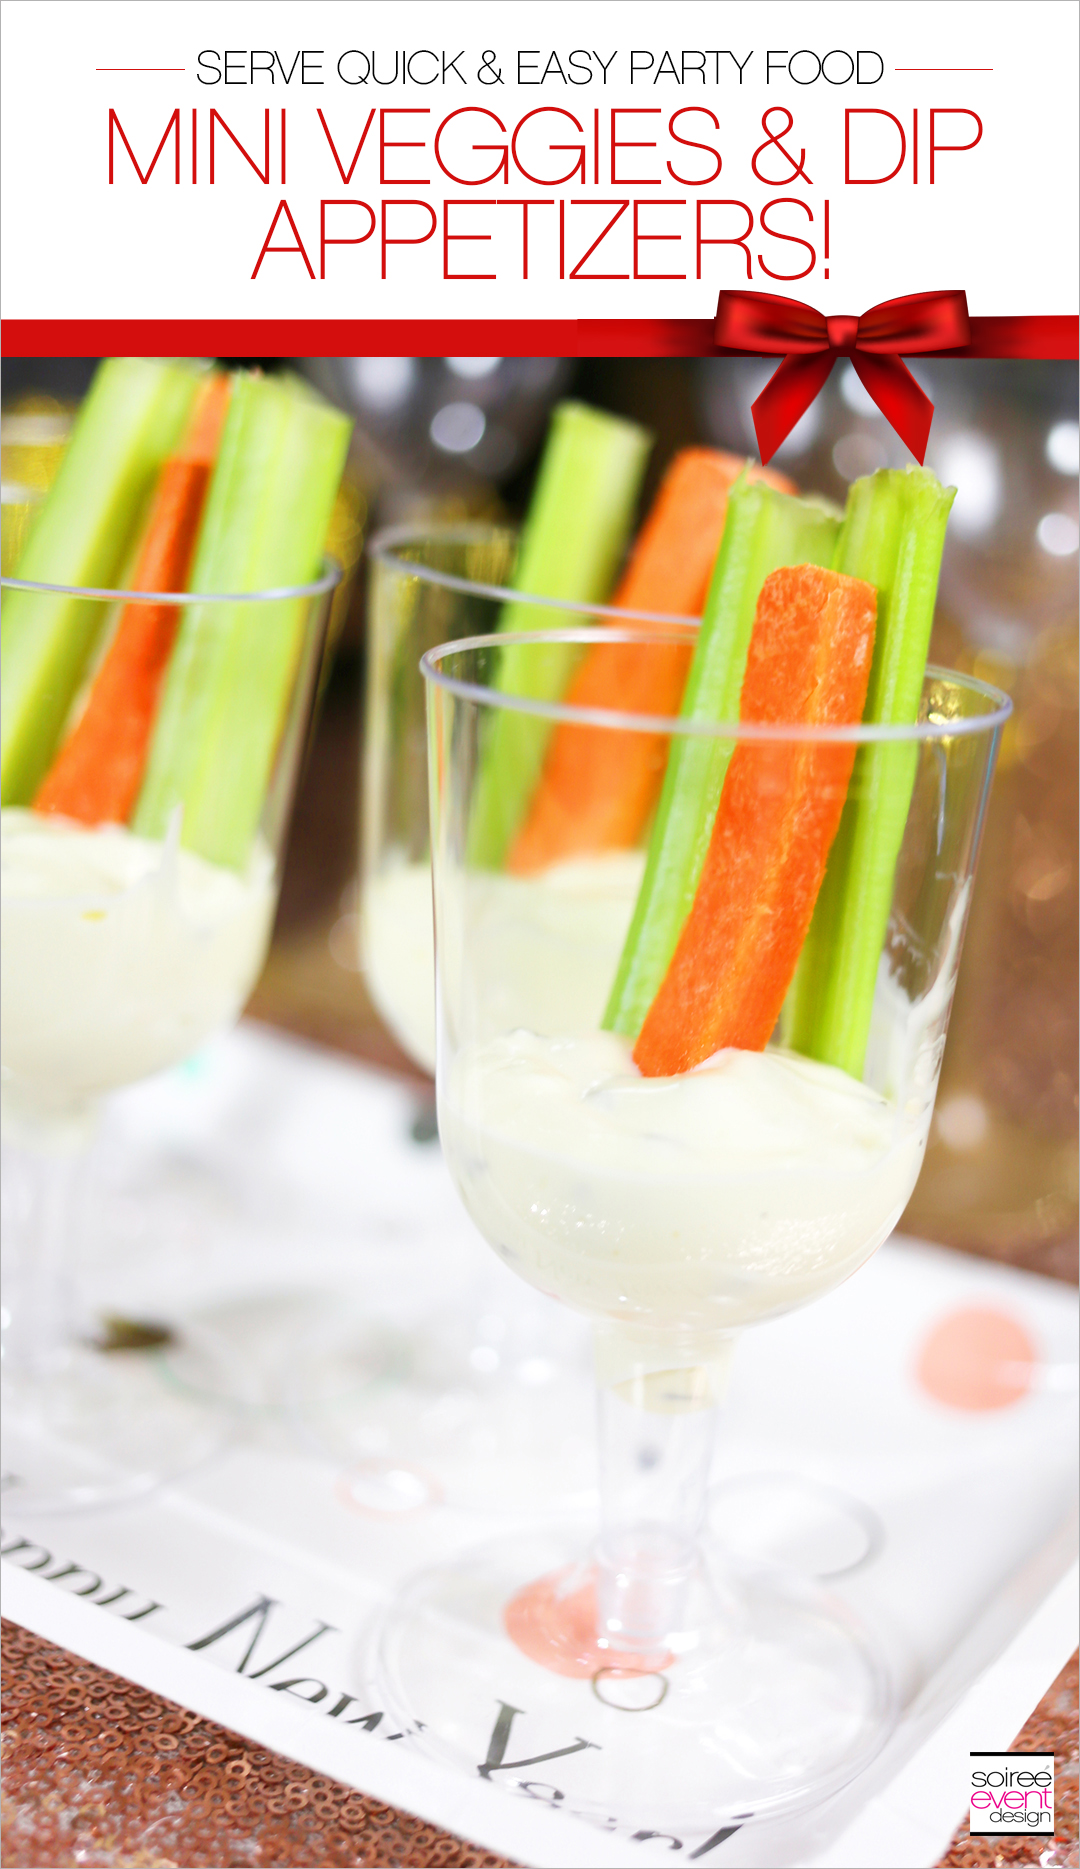 Mini Veggies and Dip Appetizers